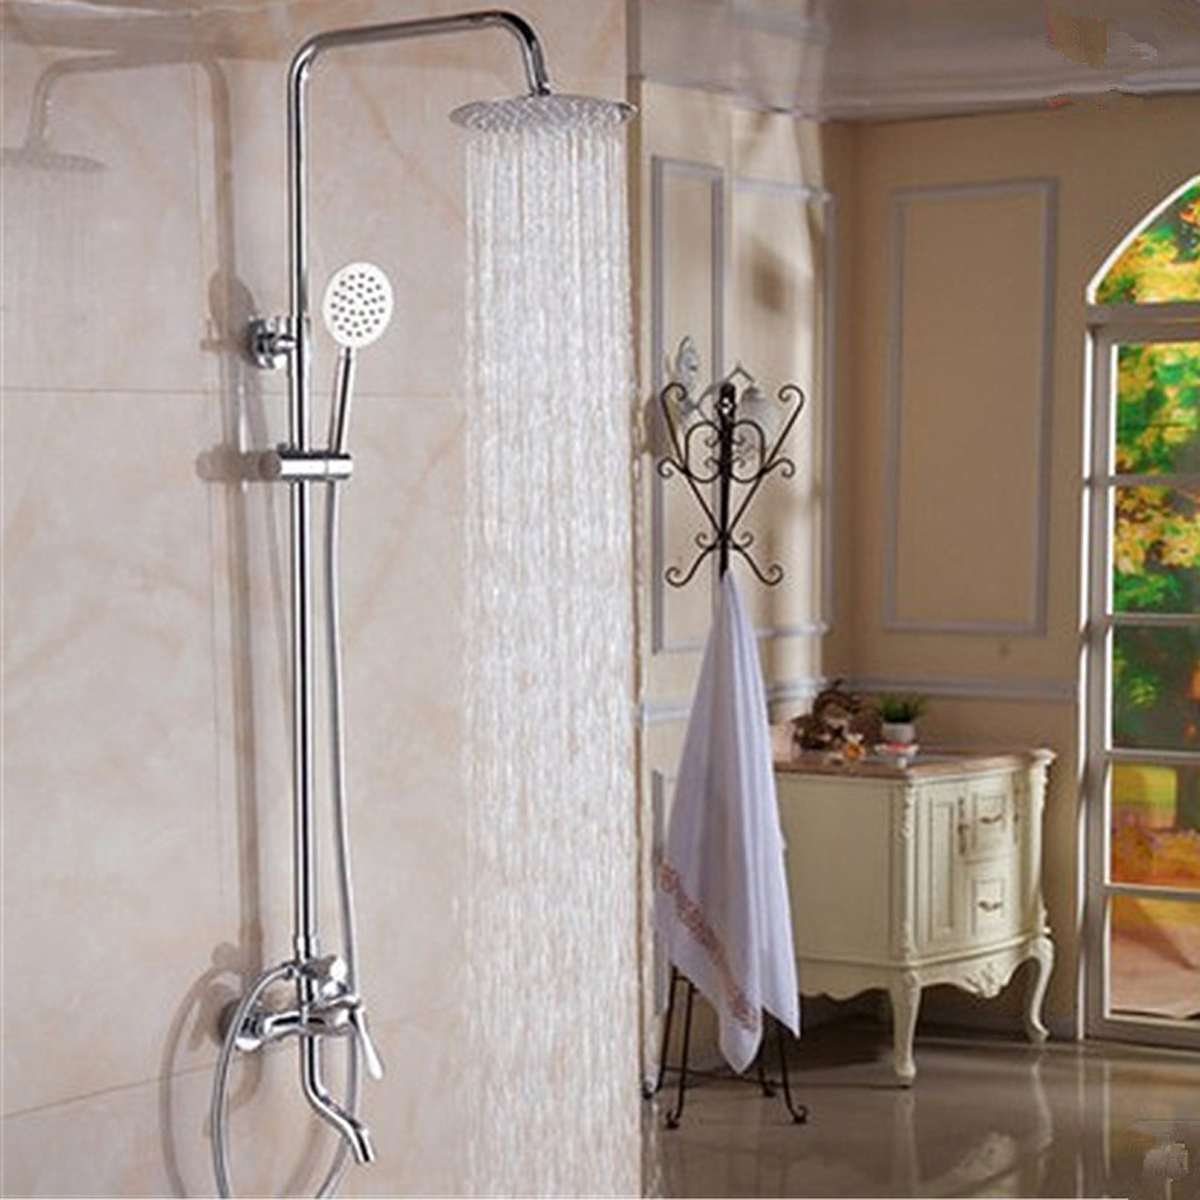 Us 62 4 52 Off 8inch Chrome Brass Polished Rainfall Shower Faucet Set Shower Tub Mixer Tap Nozzle Spout Wall Mounted With Handshower Head In Shower